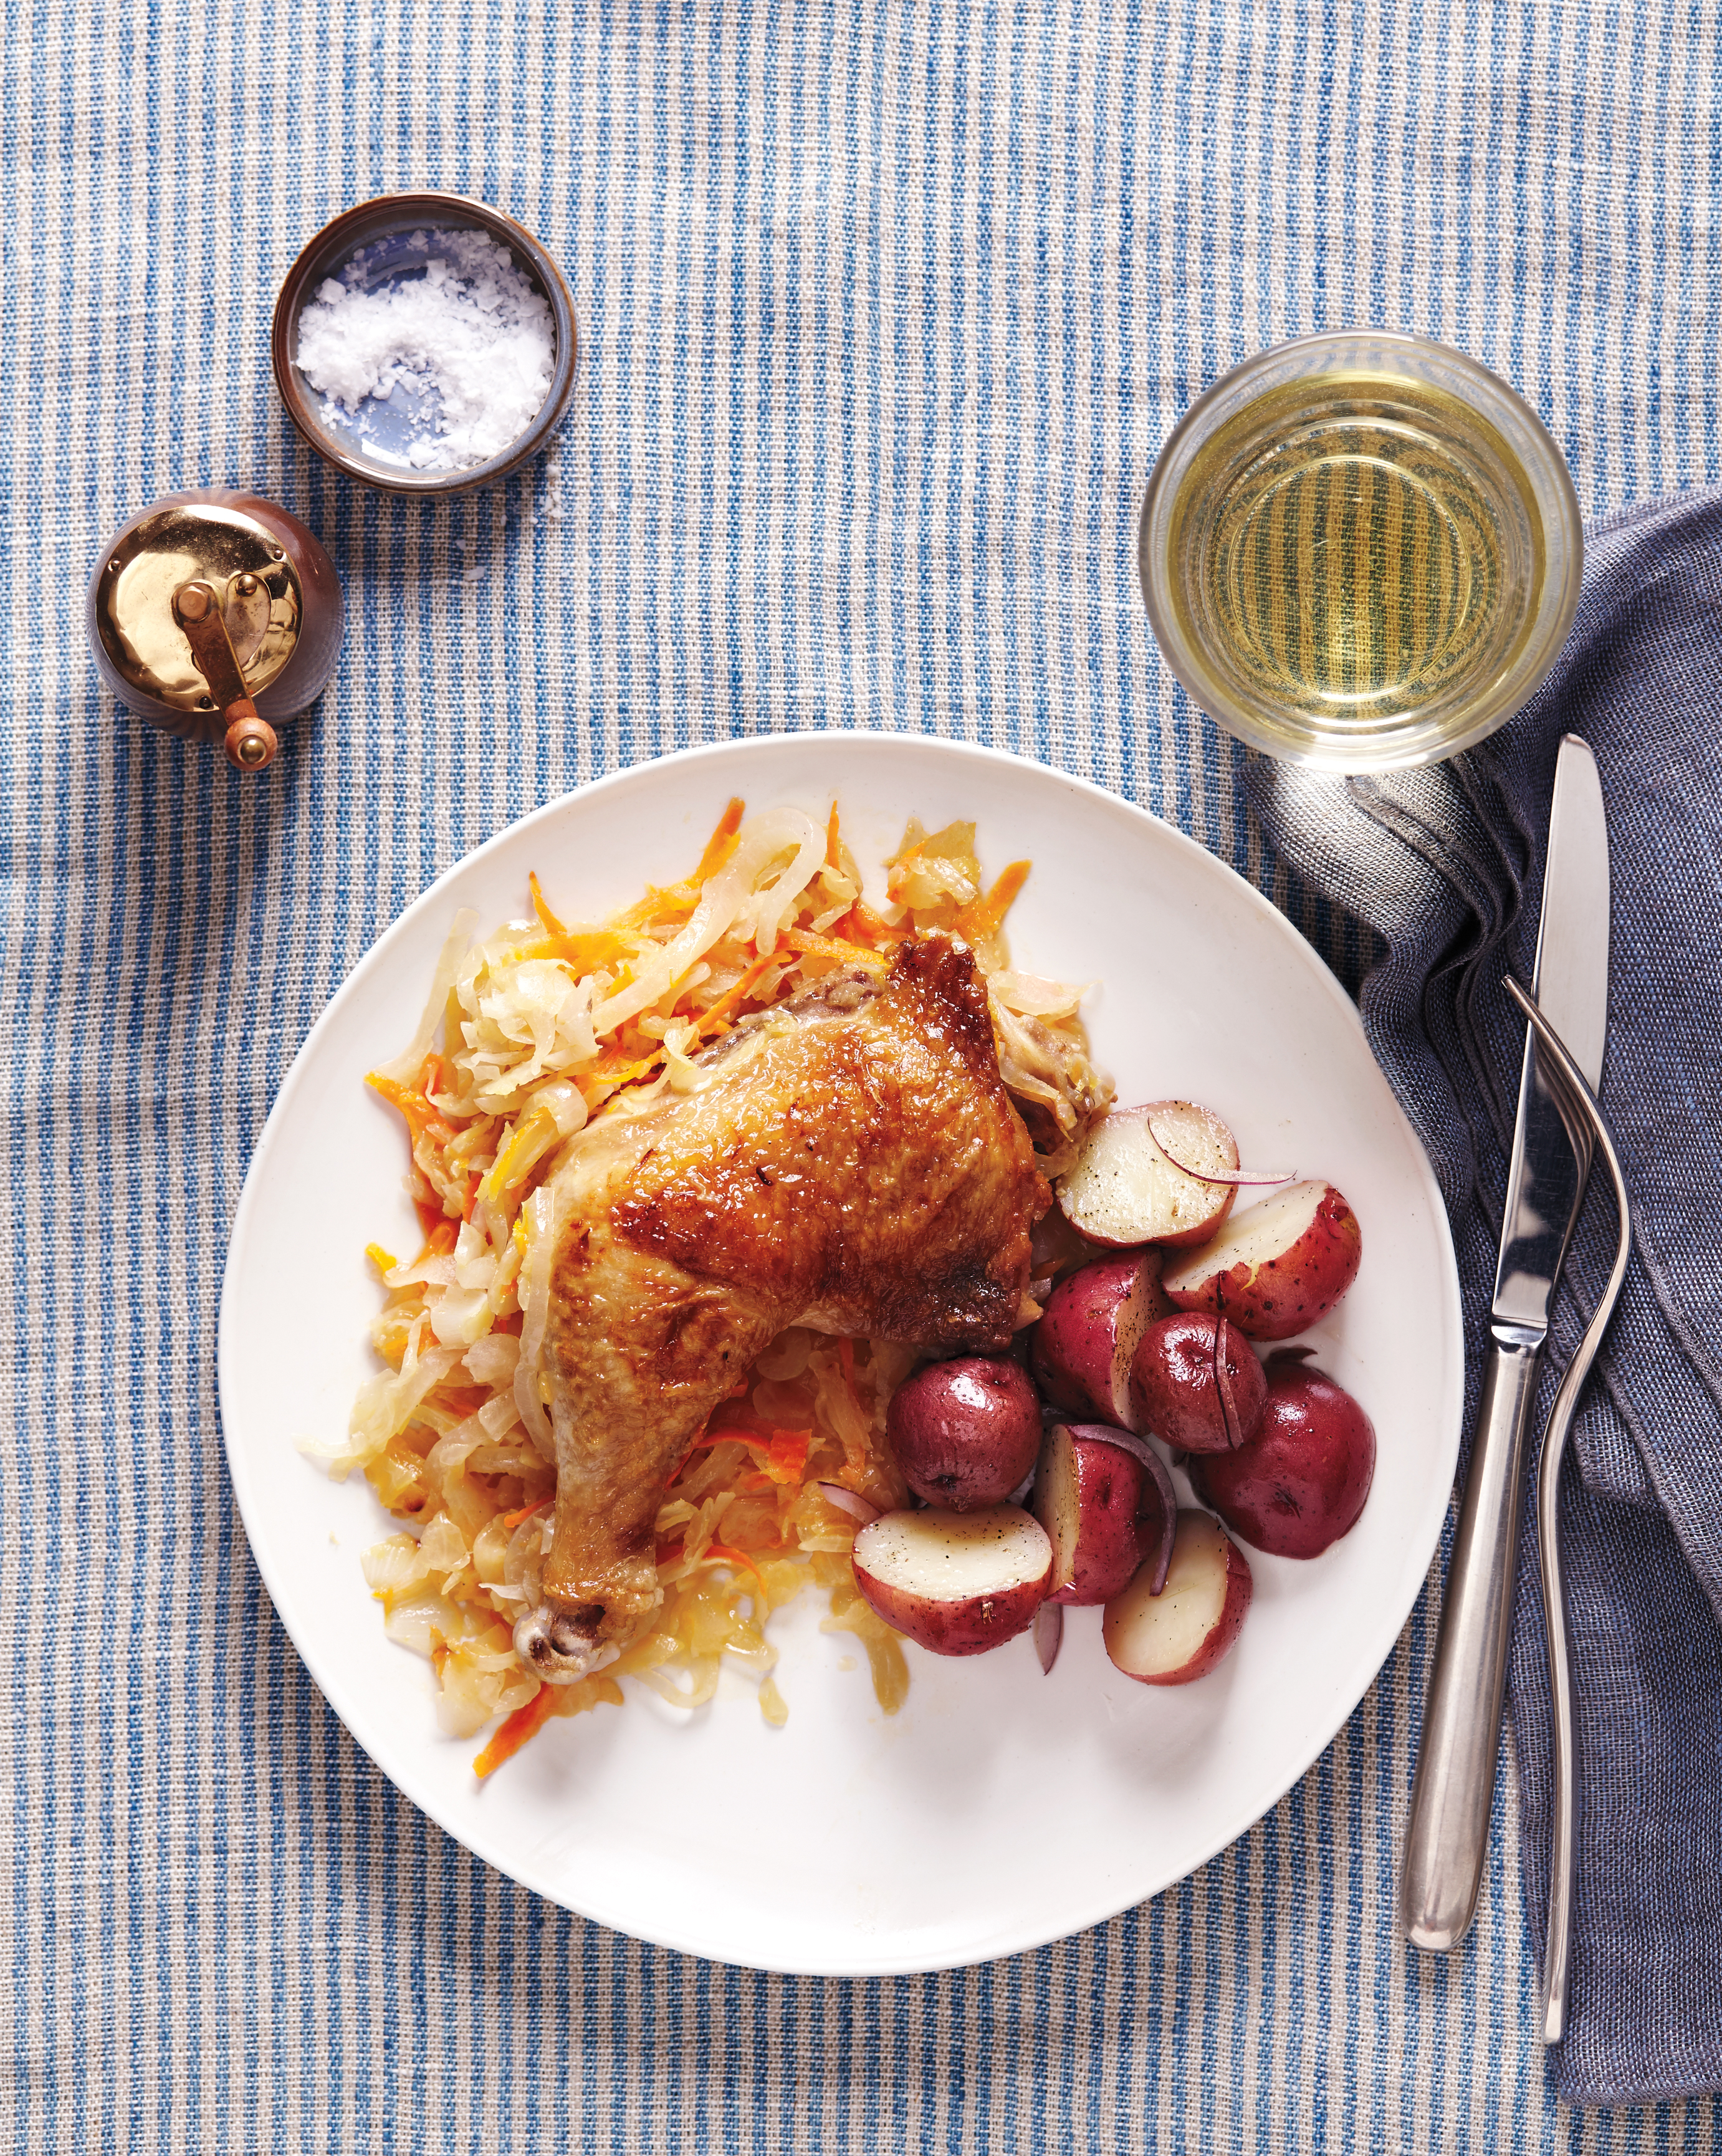 What's for Dinner? 10 Budget Meals